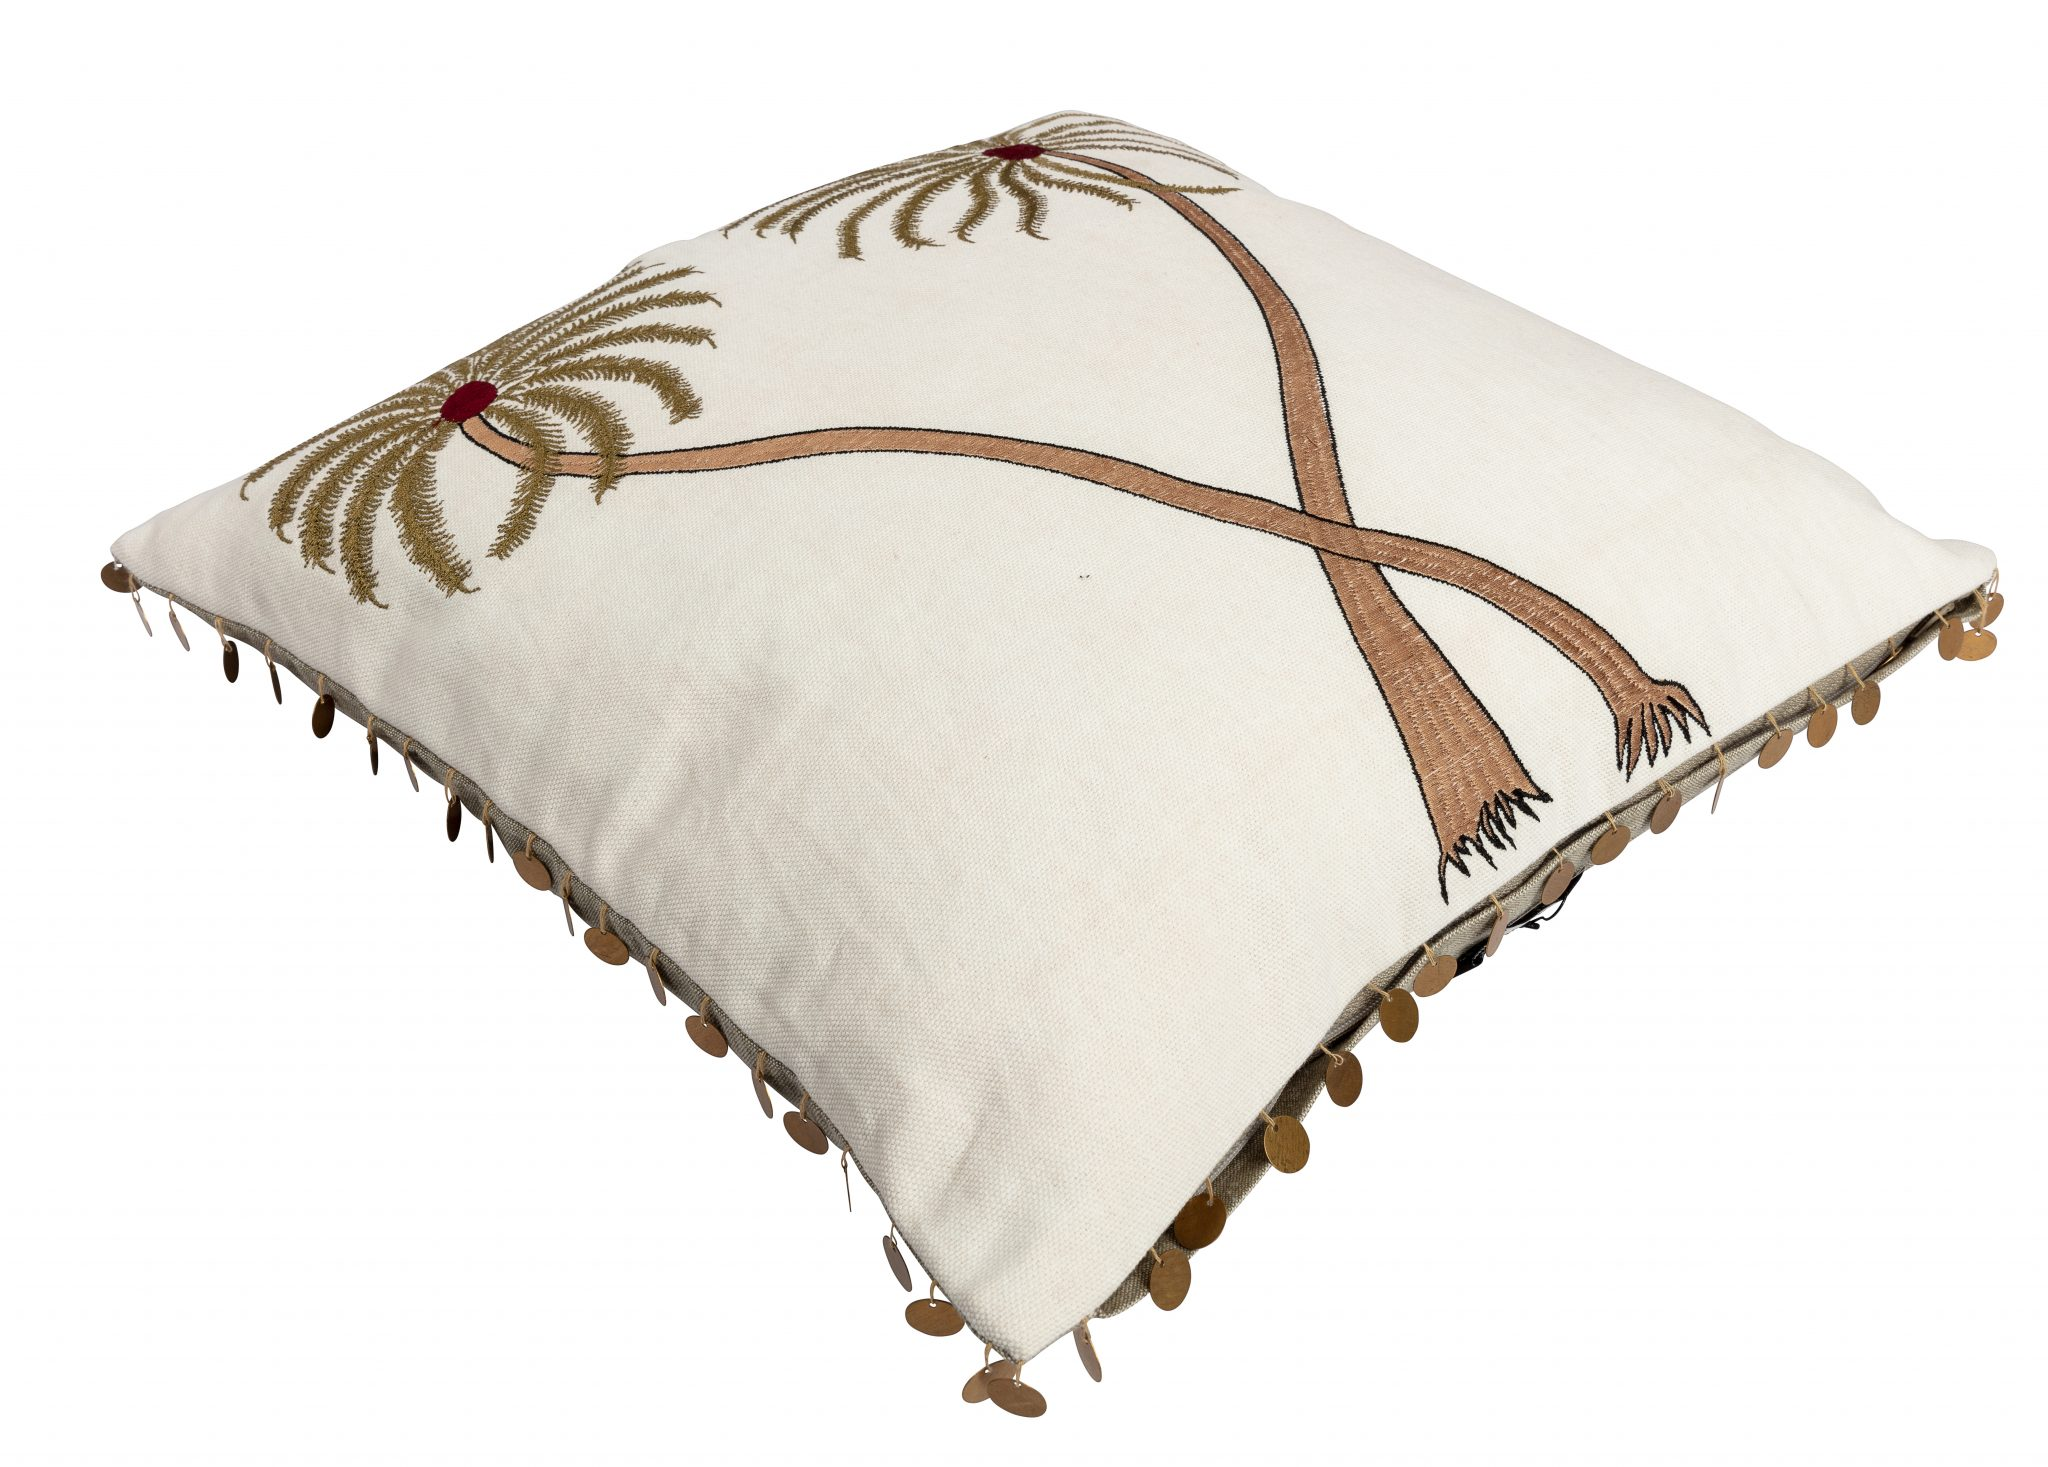 Day Home Palmtree cushion cover